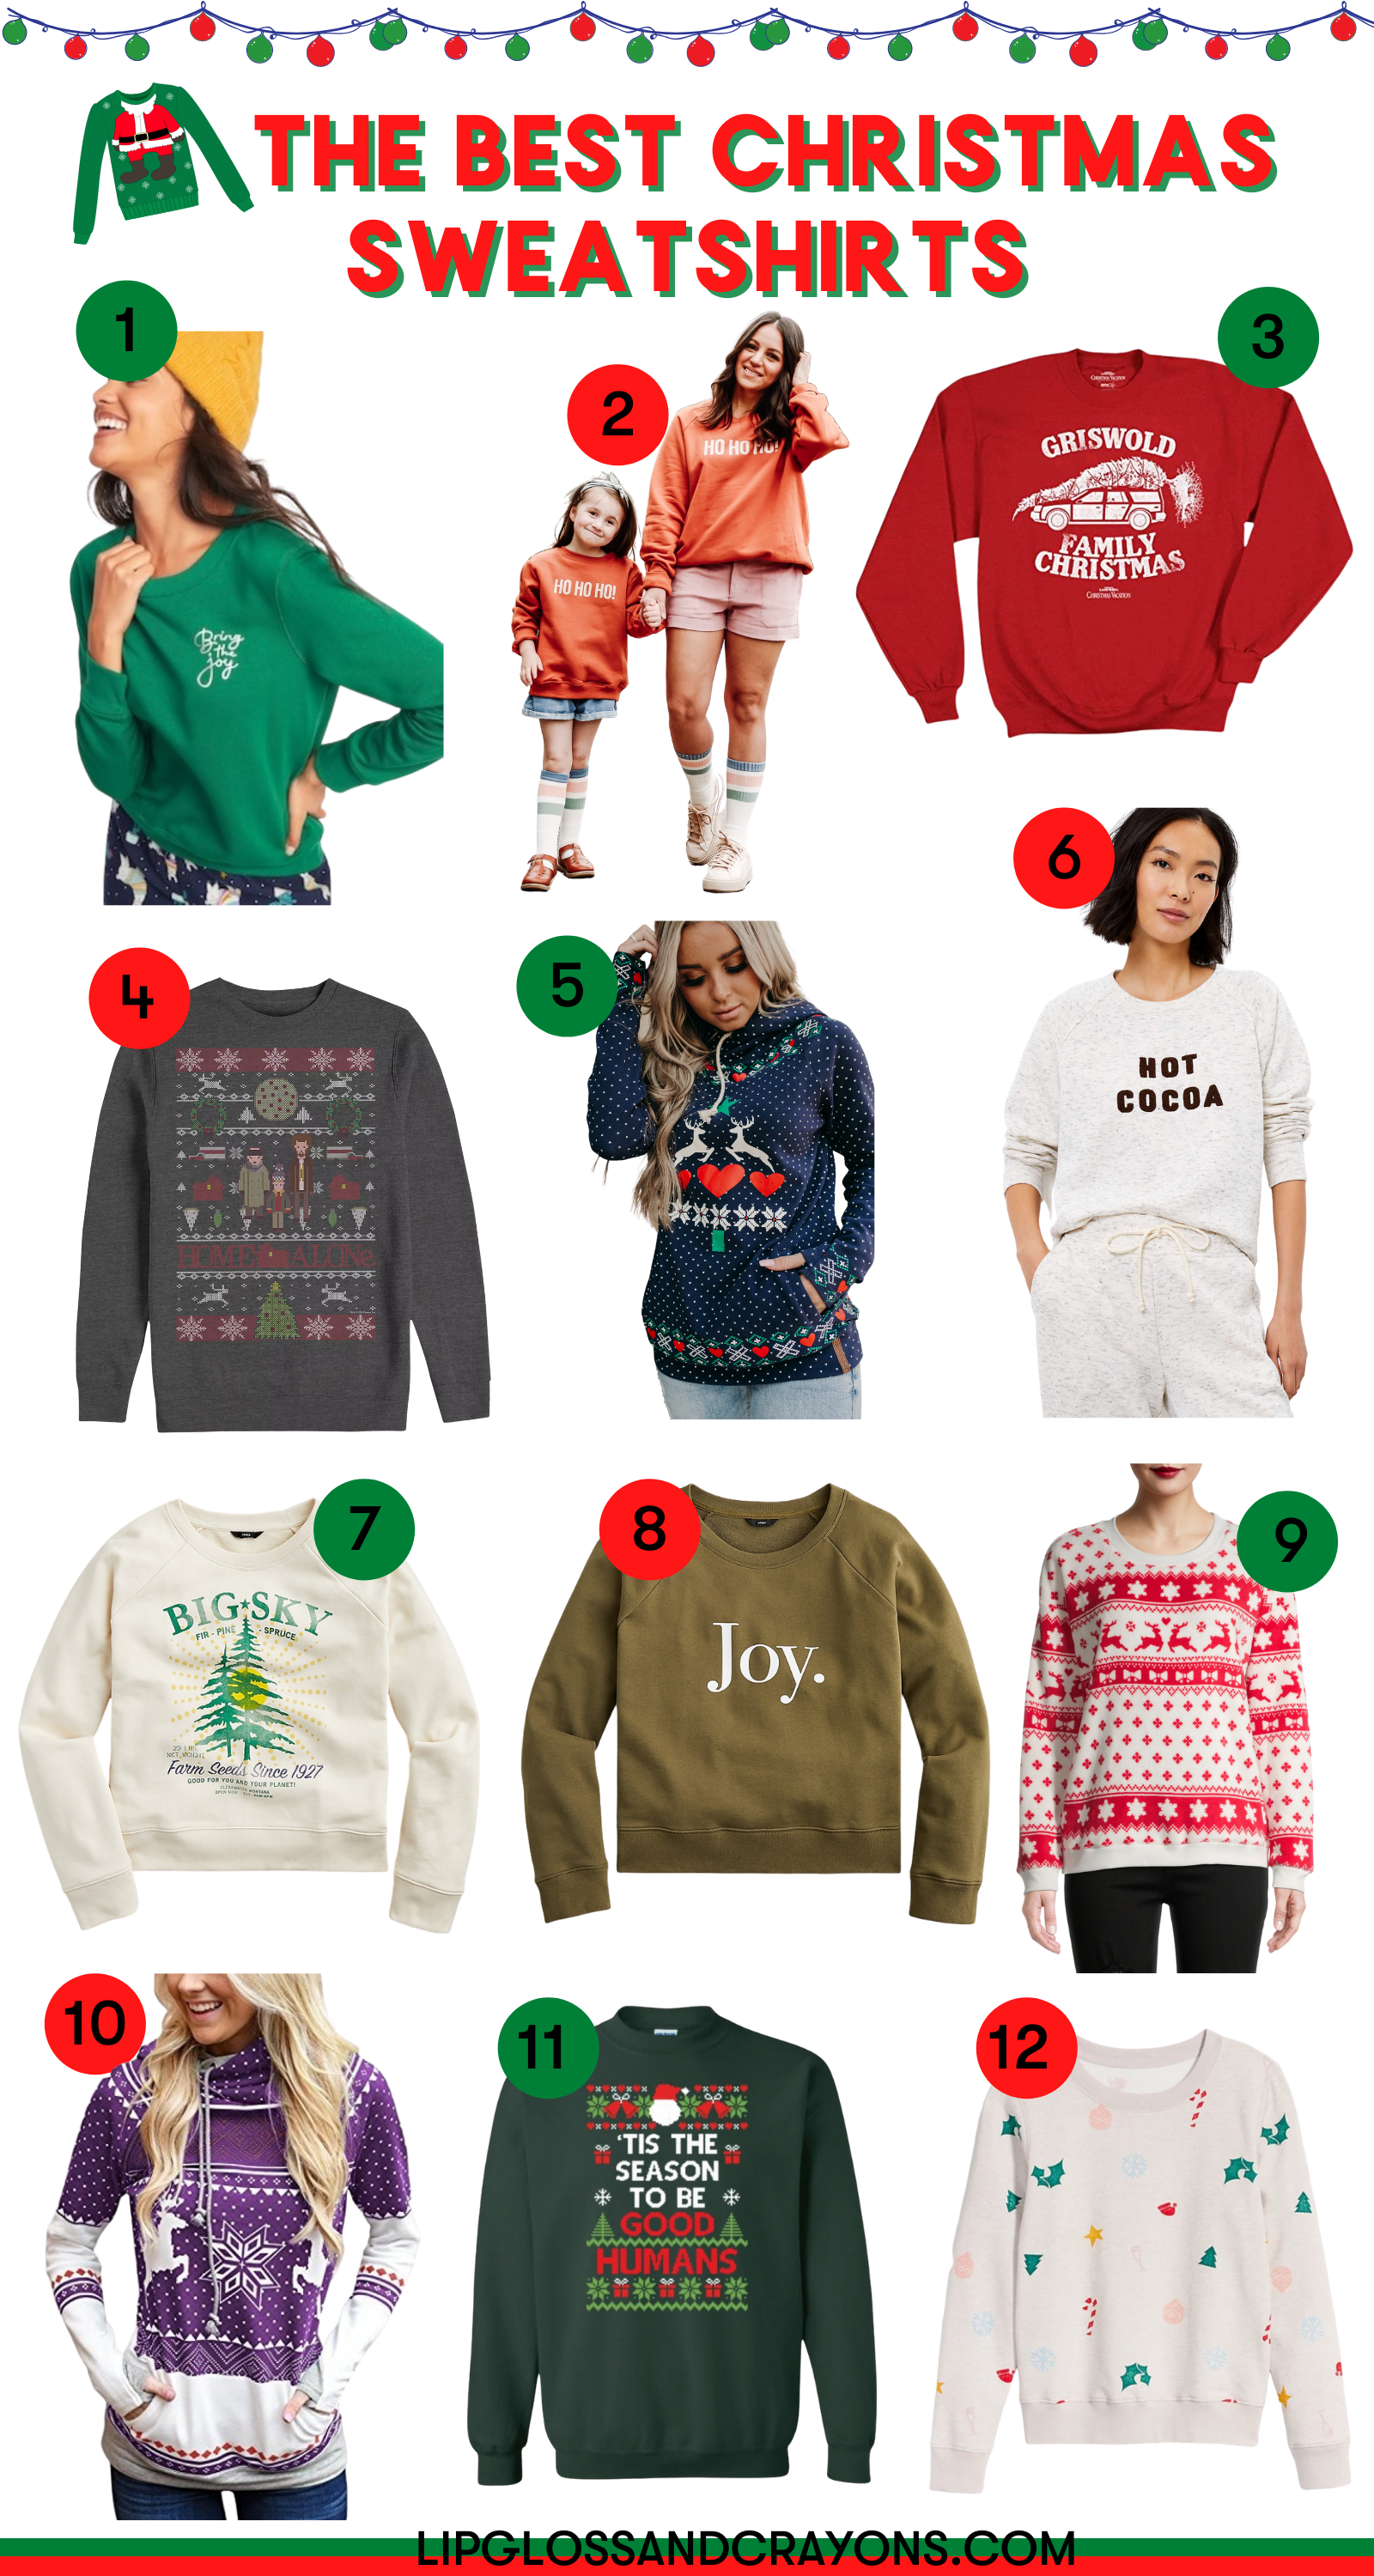 Looking for fun and cozy Christmas sweatshirts? These are some of the best!!!!